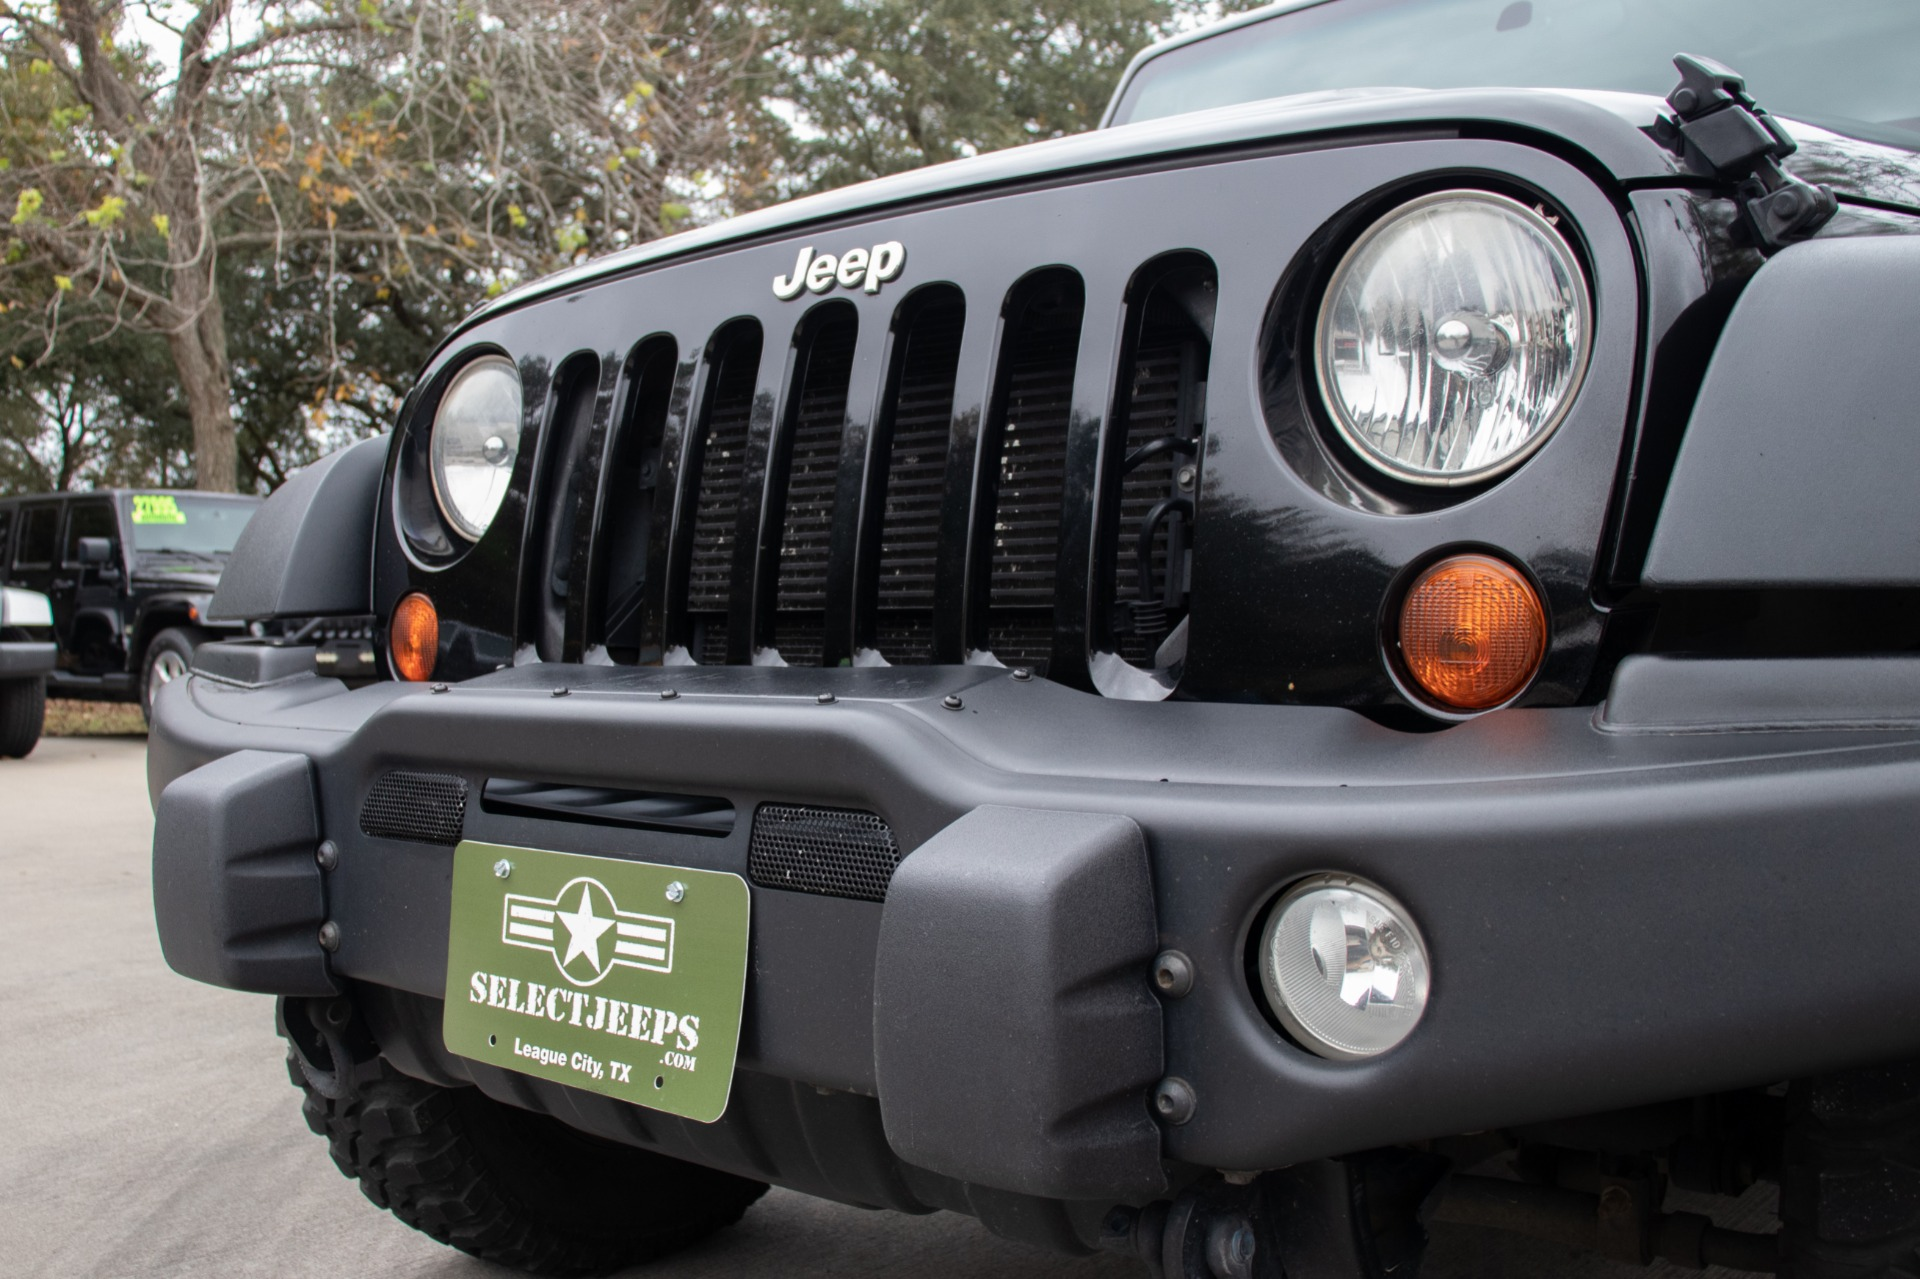 Used 2012 Jeep Wrangler Unlimited Call of Duty MW3 For Sale ($25,995) | Select Jeeps Inc. Stock ...